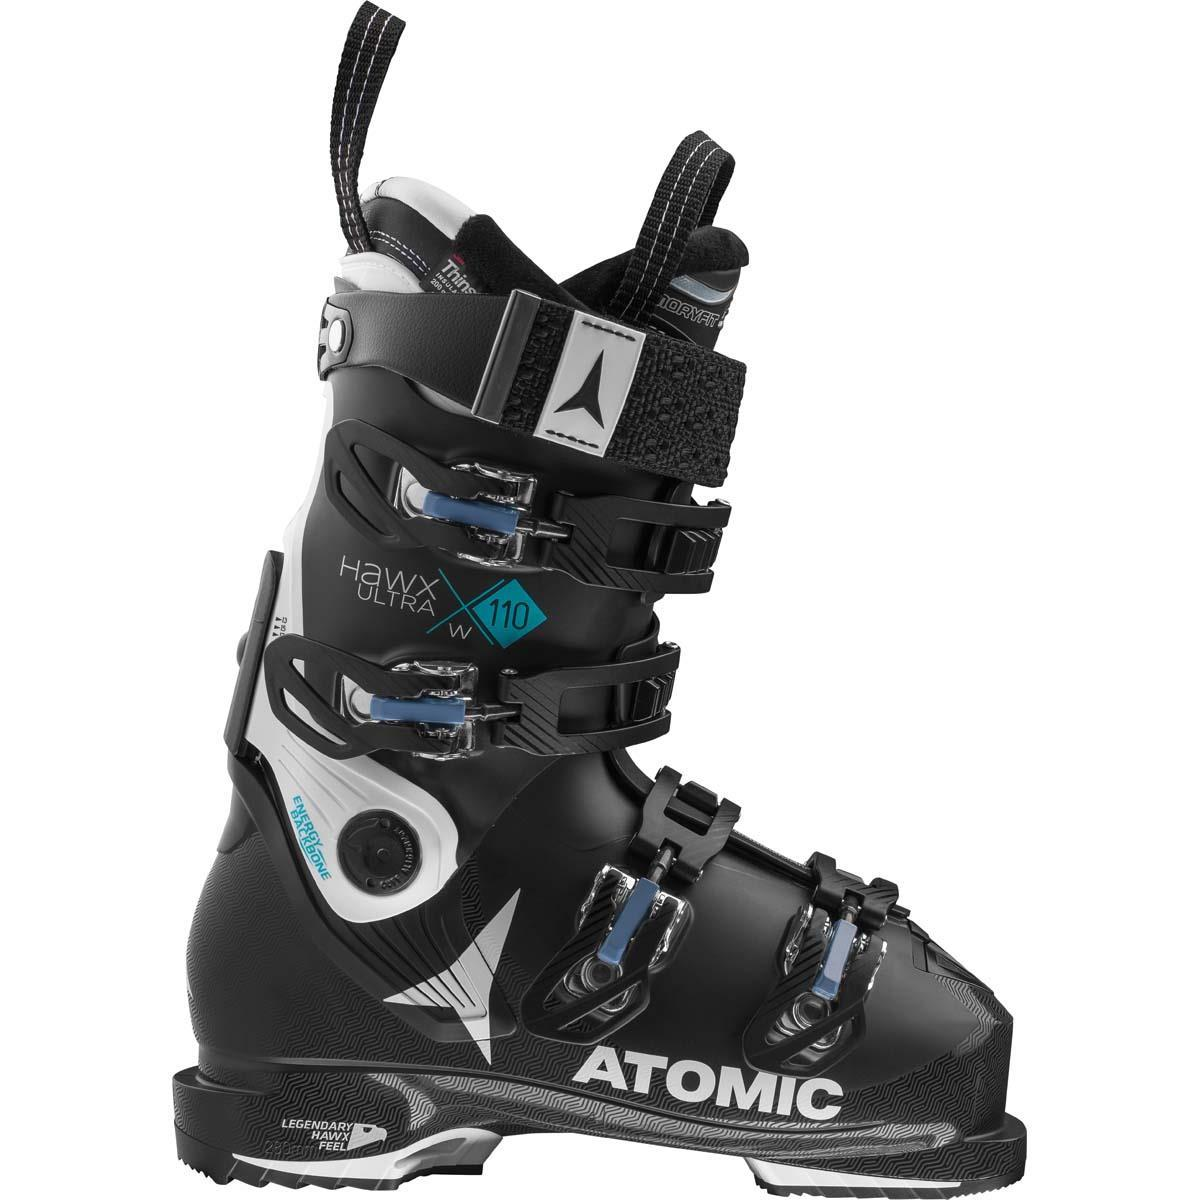 new style e224d c8211 Atomic Hawx Ultra 110 Ski Boots - Women's